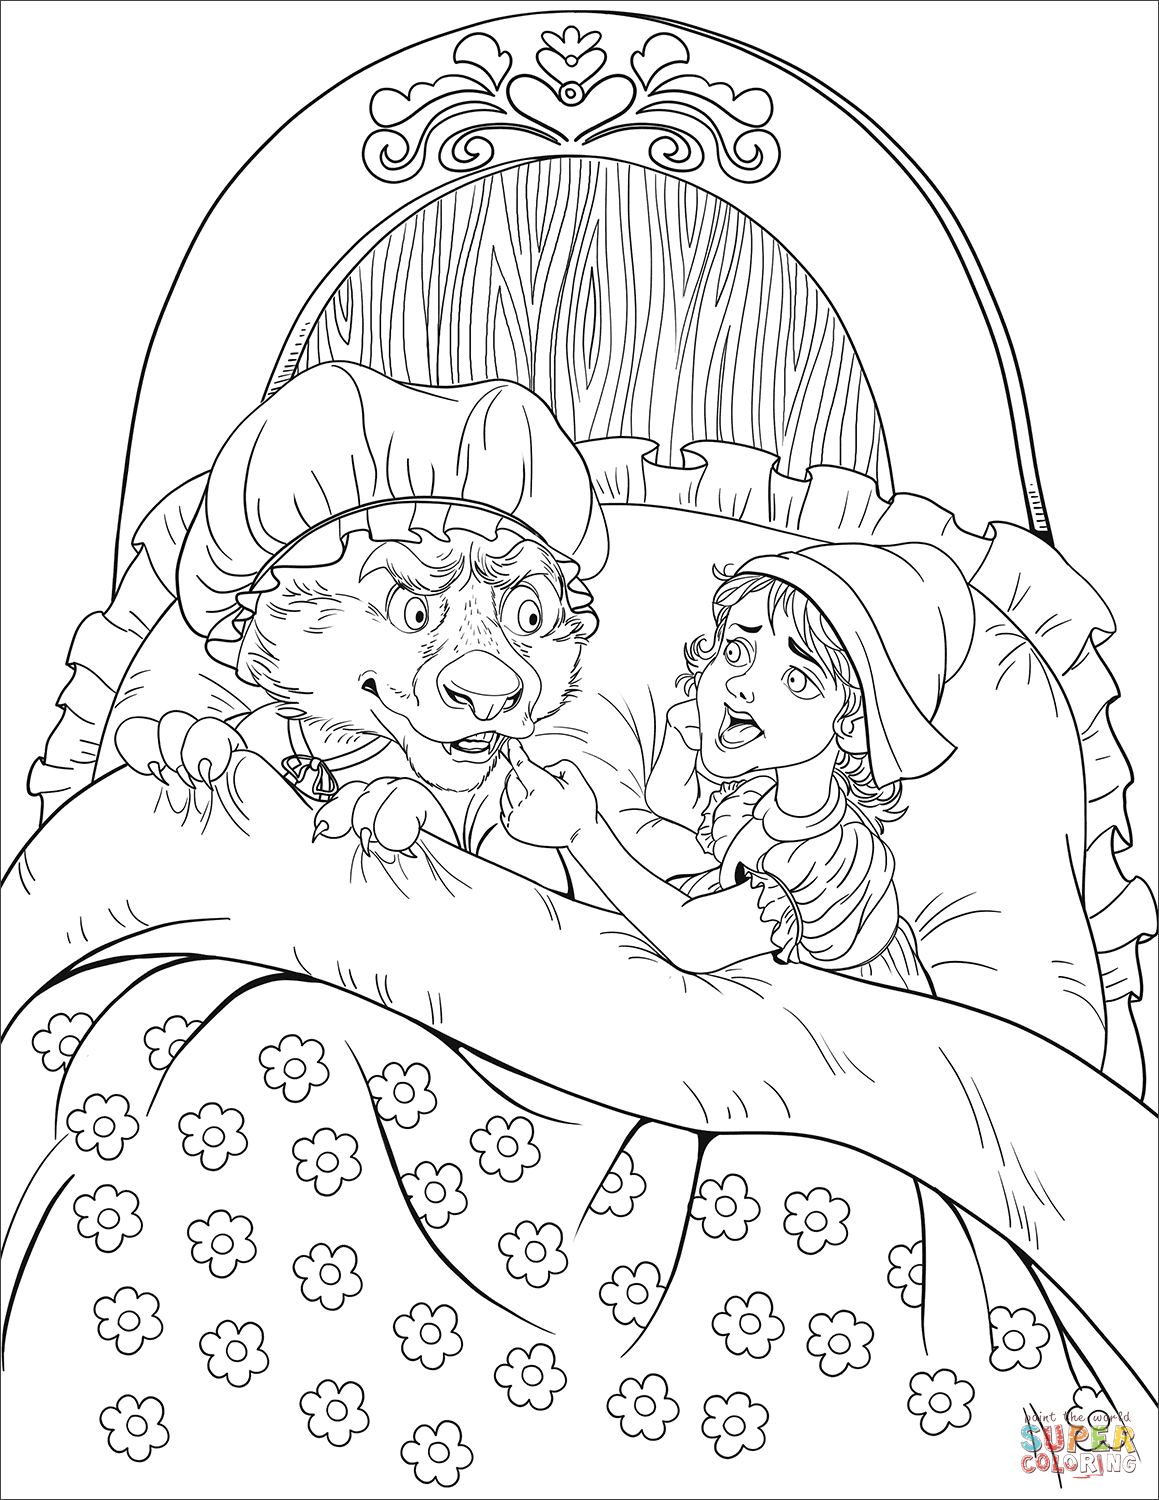 Granny, What Big Teeth You Have! Asks Little Red Riding Hood - Little Red Riding Hood Masks Printable Free